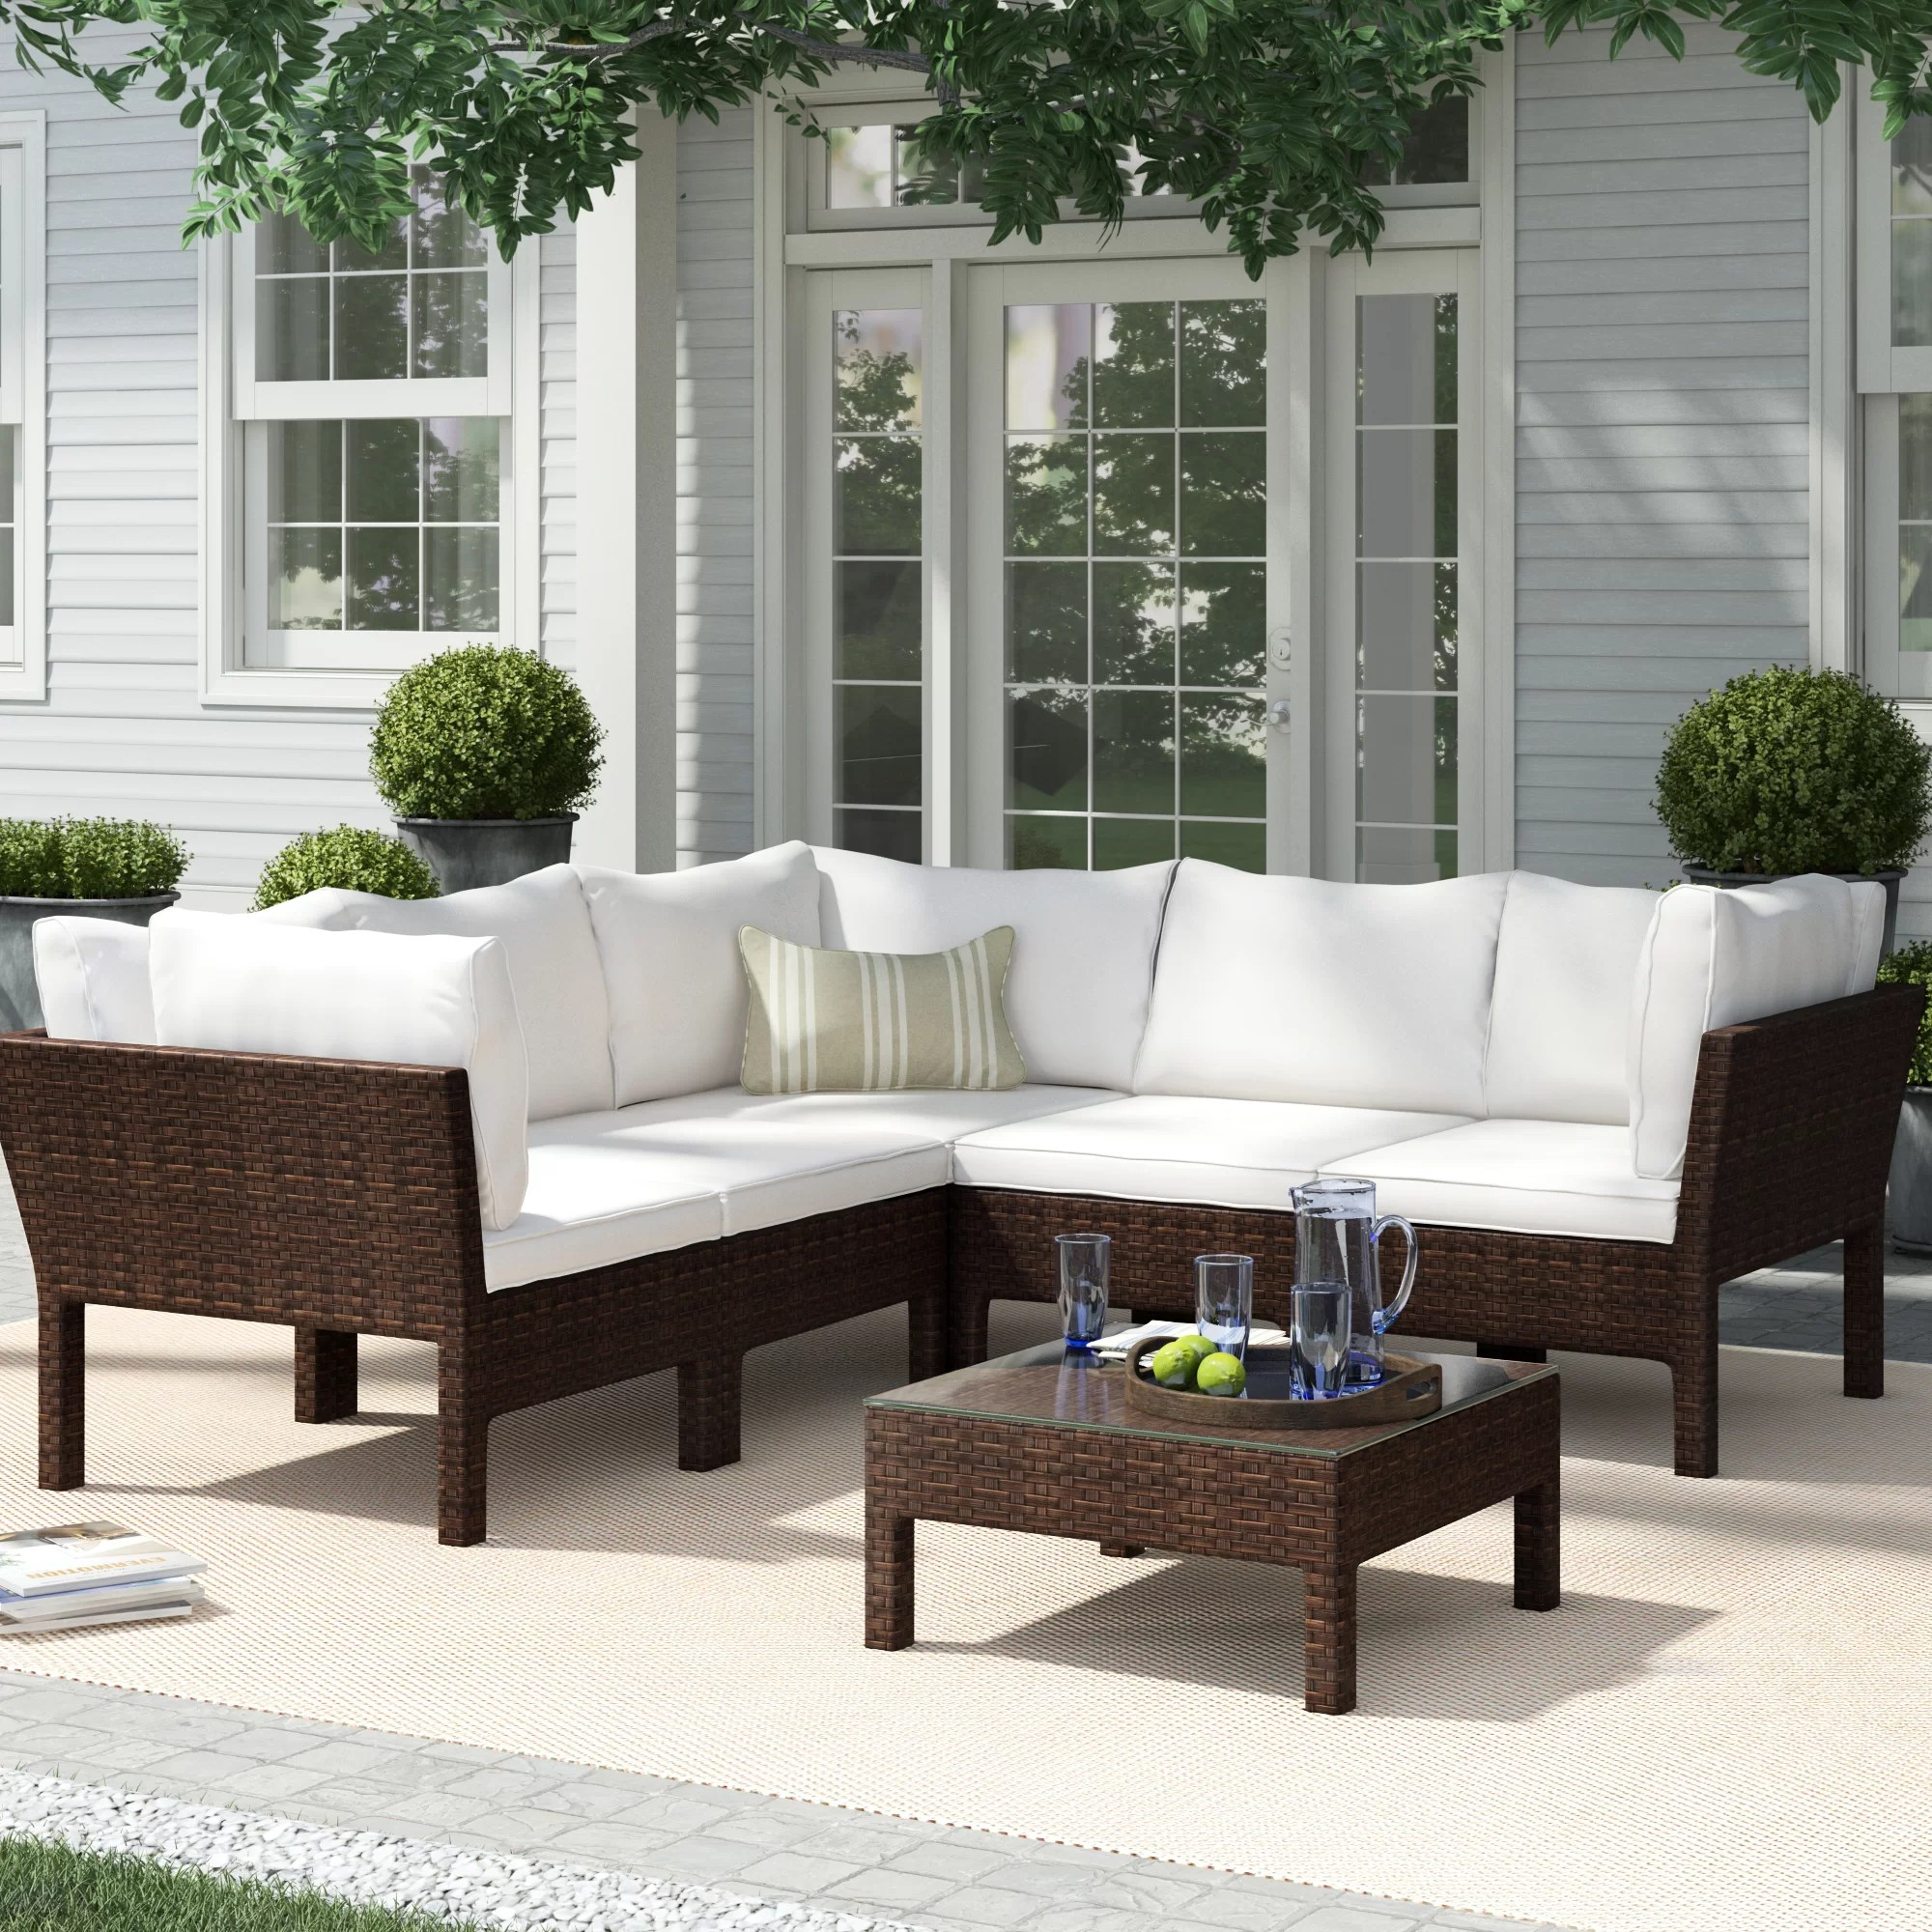 Sofa Entertainment Group Llc Ricci 6 Piece Rattan Sectional Seating Group With Cushions